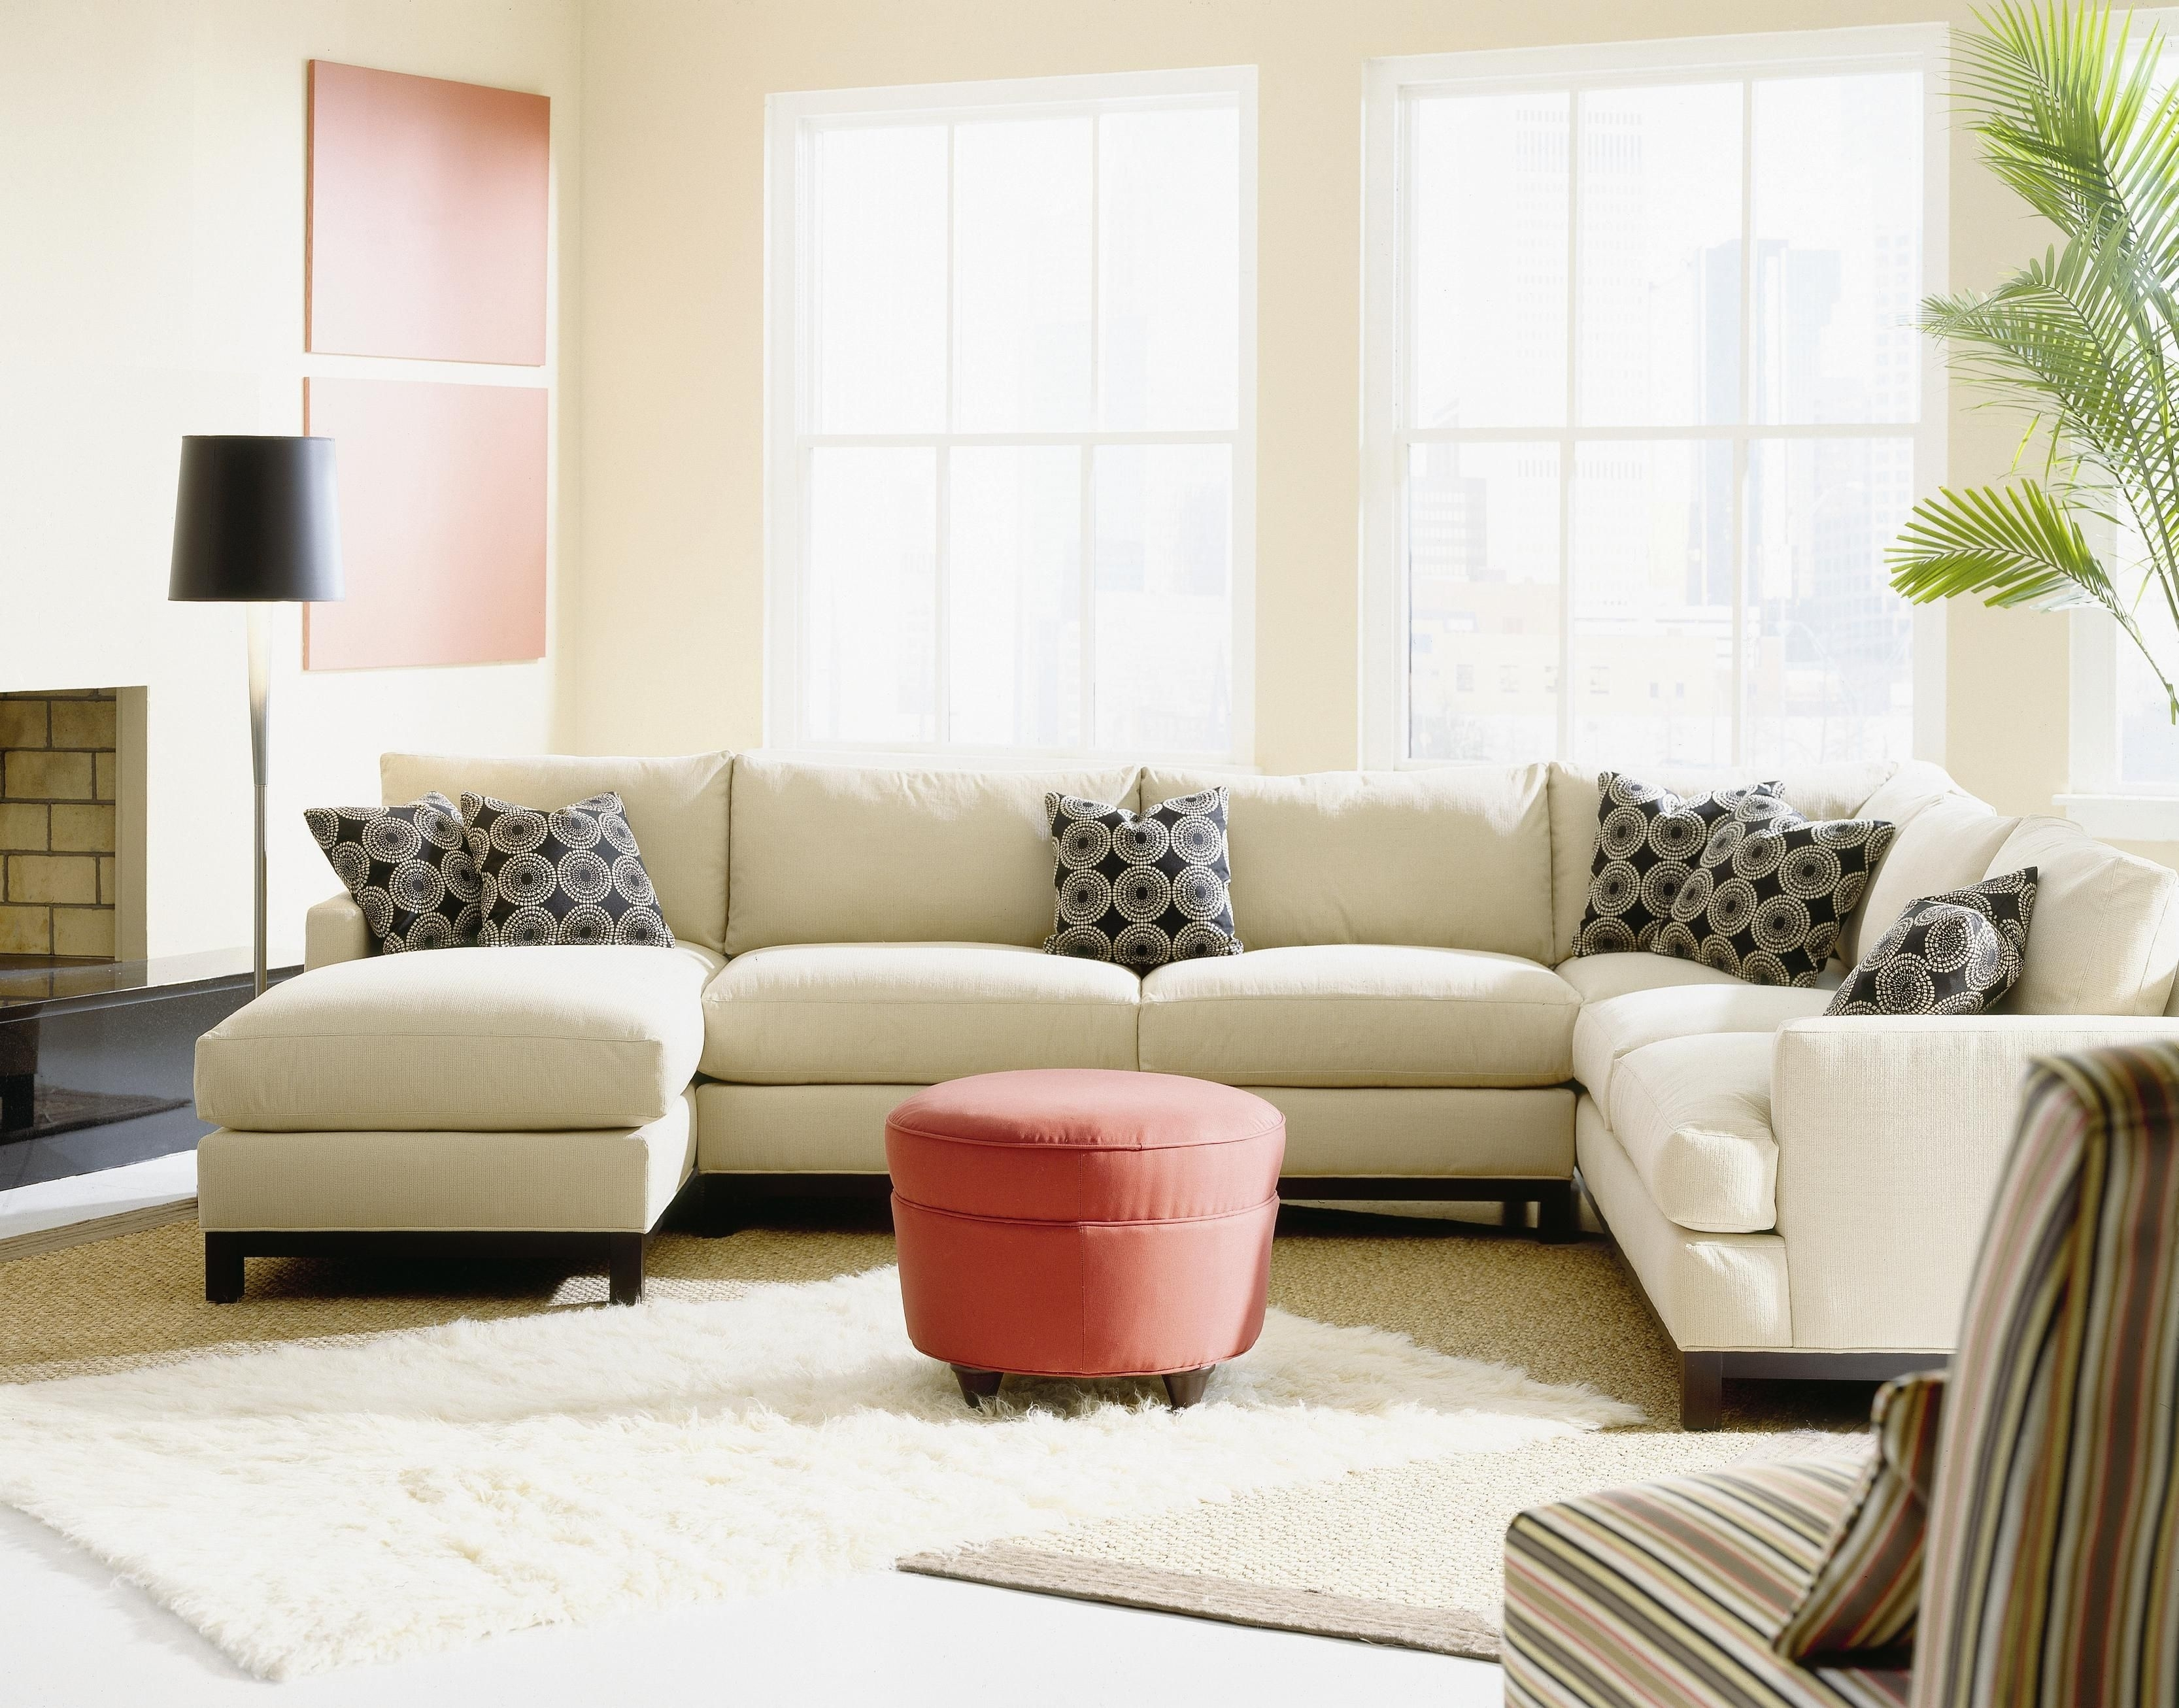 Crisp Contemporary Modular Sectional Sofa Can Be Rearranged To Fit inside Sectional Sofas That Can Be Rearranged (Image 3 of 10)